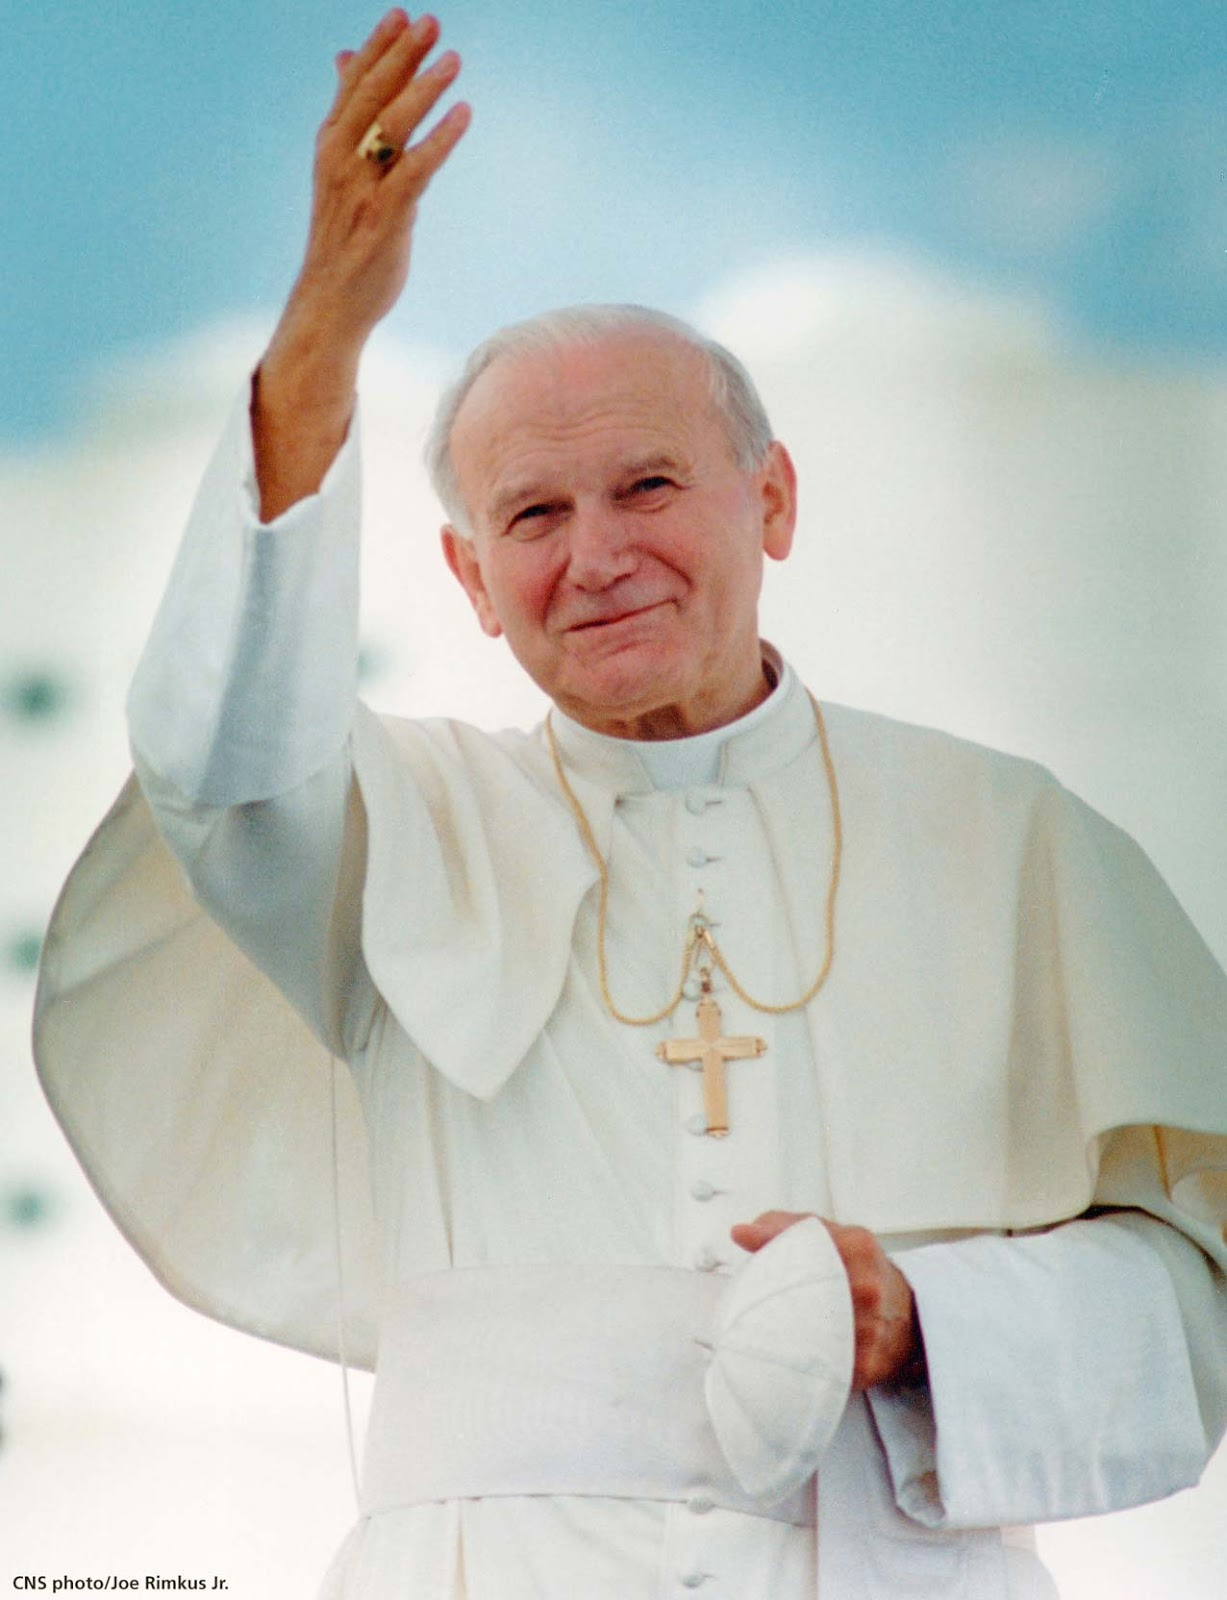 John Paul II, the Polish cleric was a personal friend of Teresa and as the pope at the time of her death, he was responsible for her being beatified in 2003.